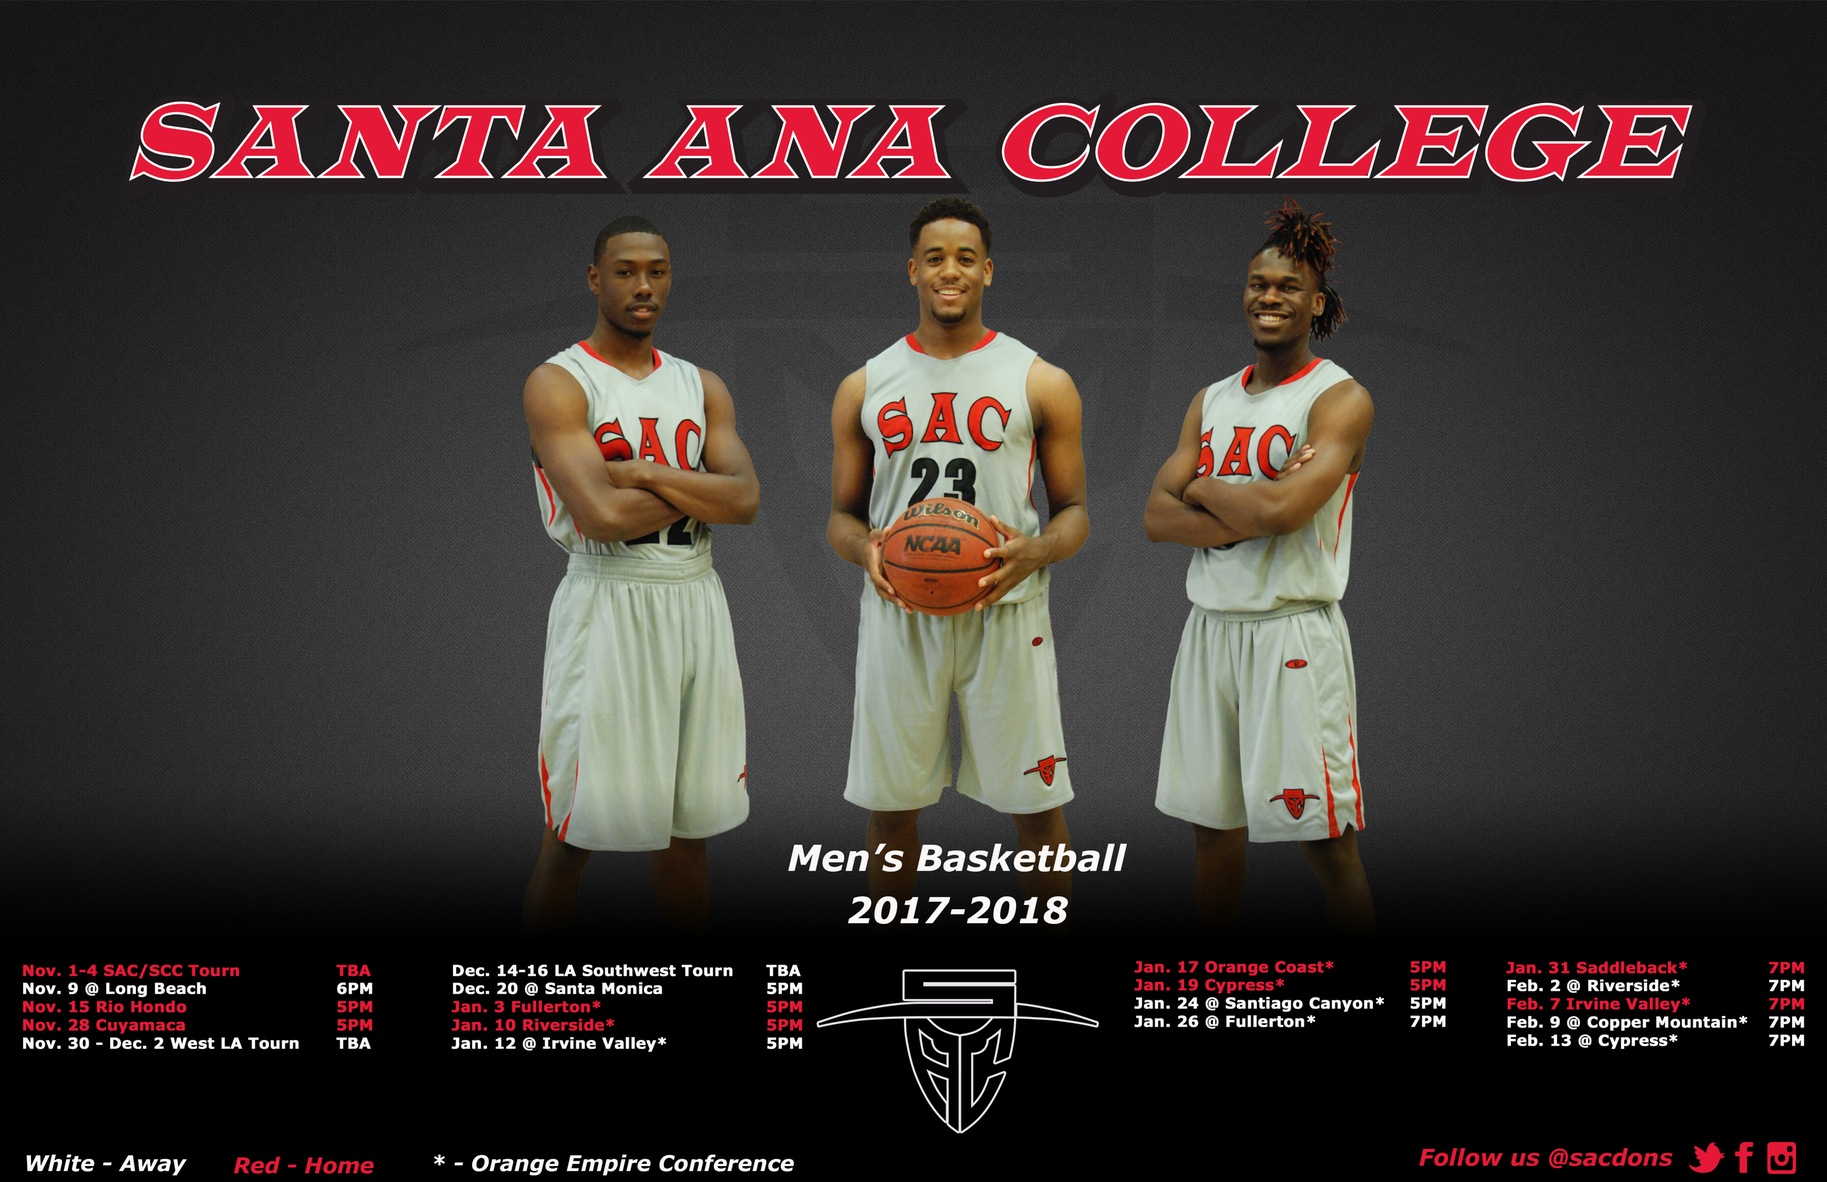 Santa Ana Hosts Bakersfield College to Open the Season